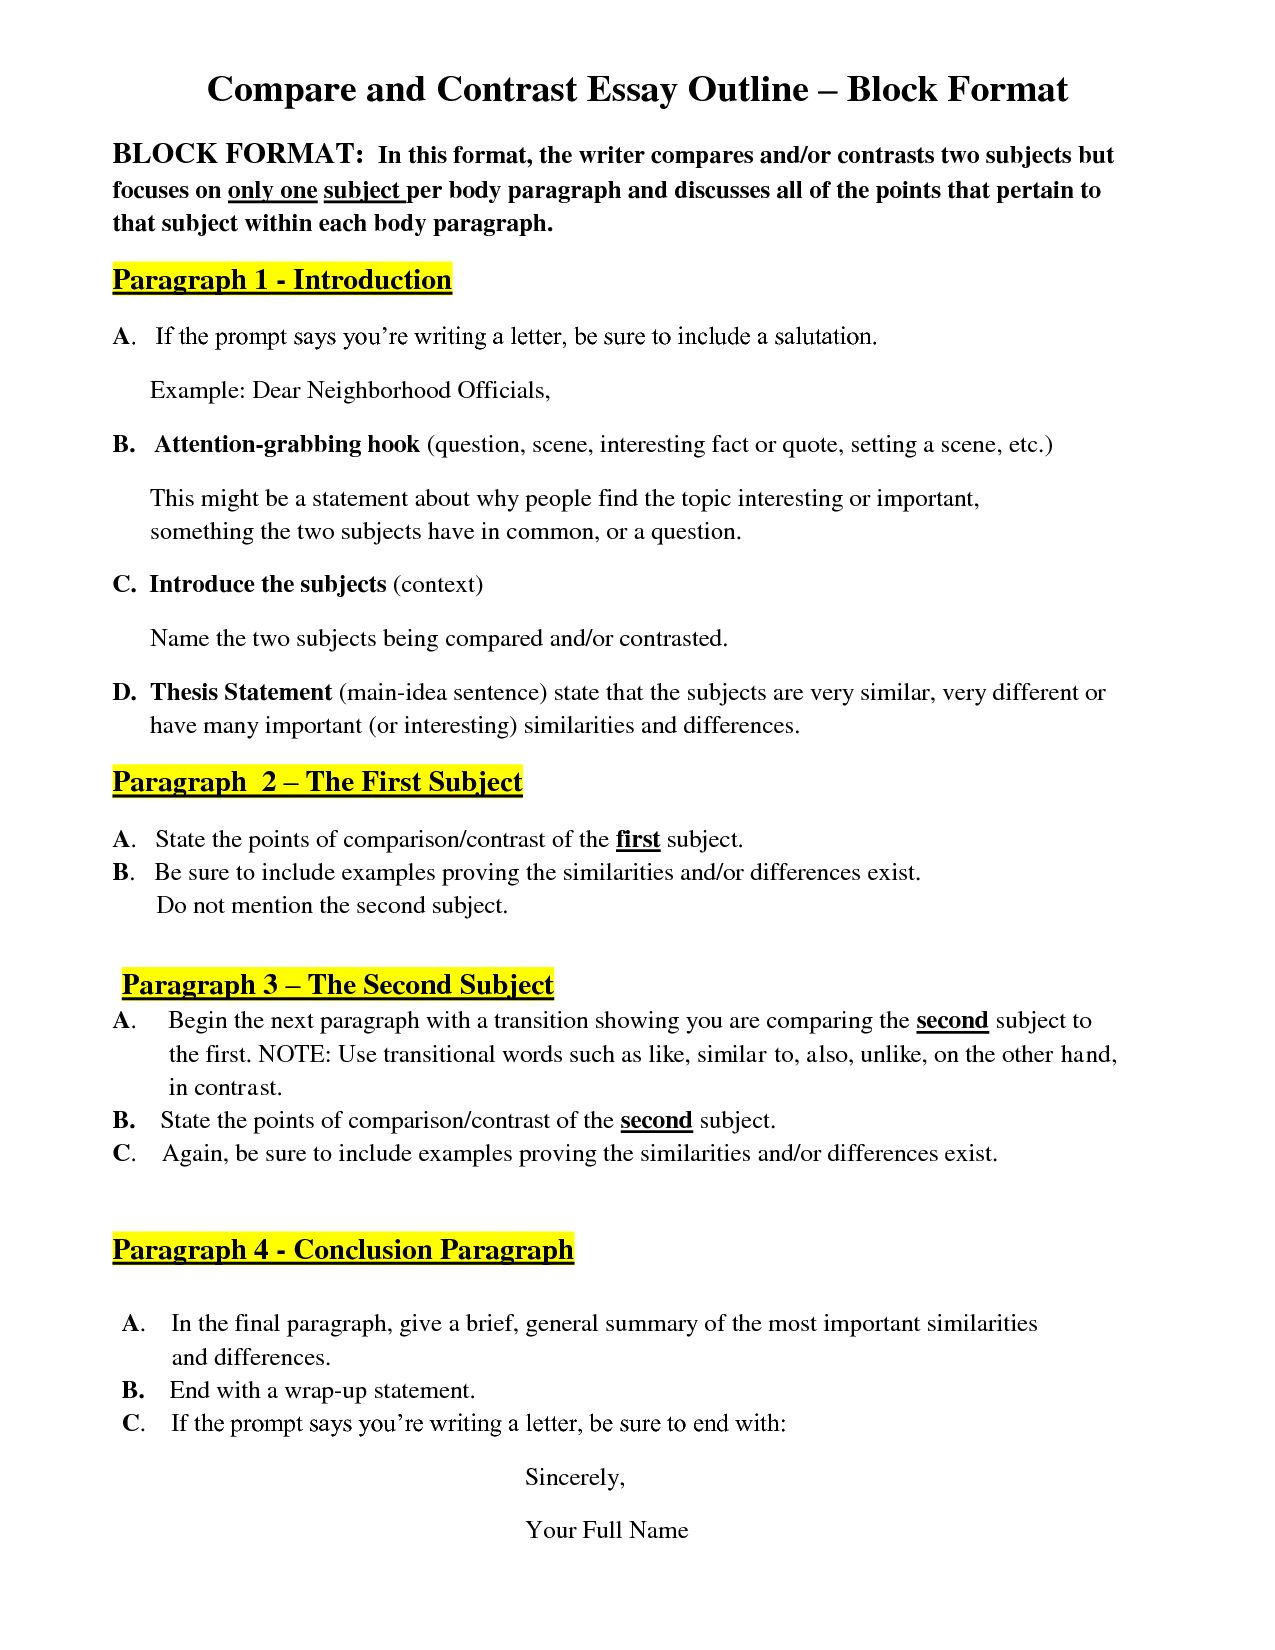 006 Contrast Essay Topics Example Astounding Comparison Middle School Compare For Elementary Students Prompts Full